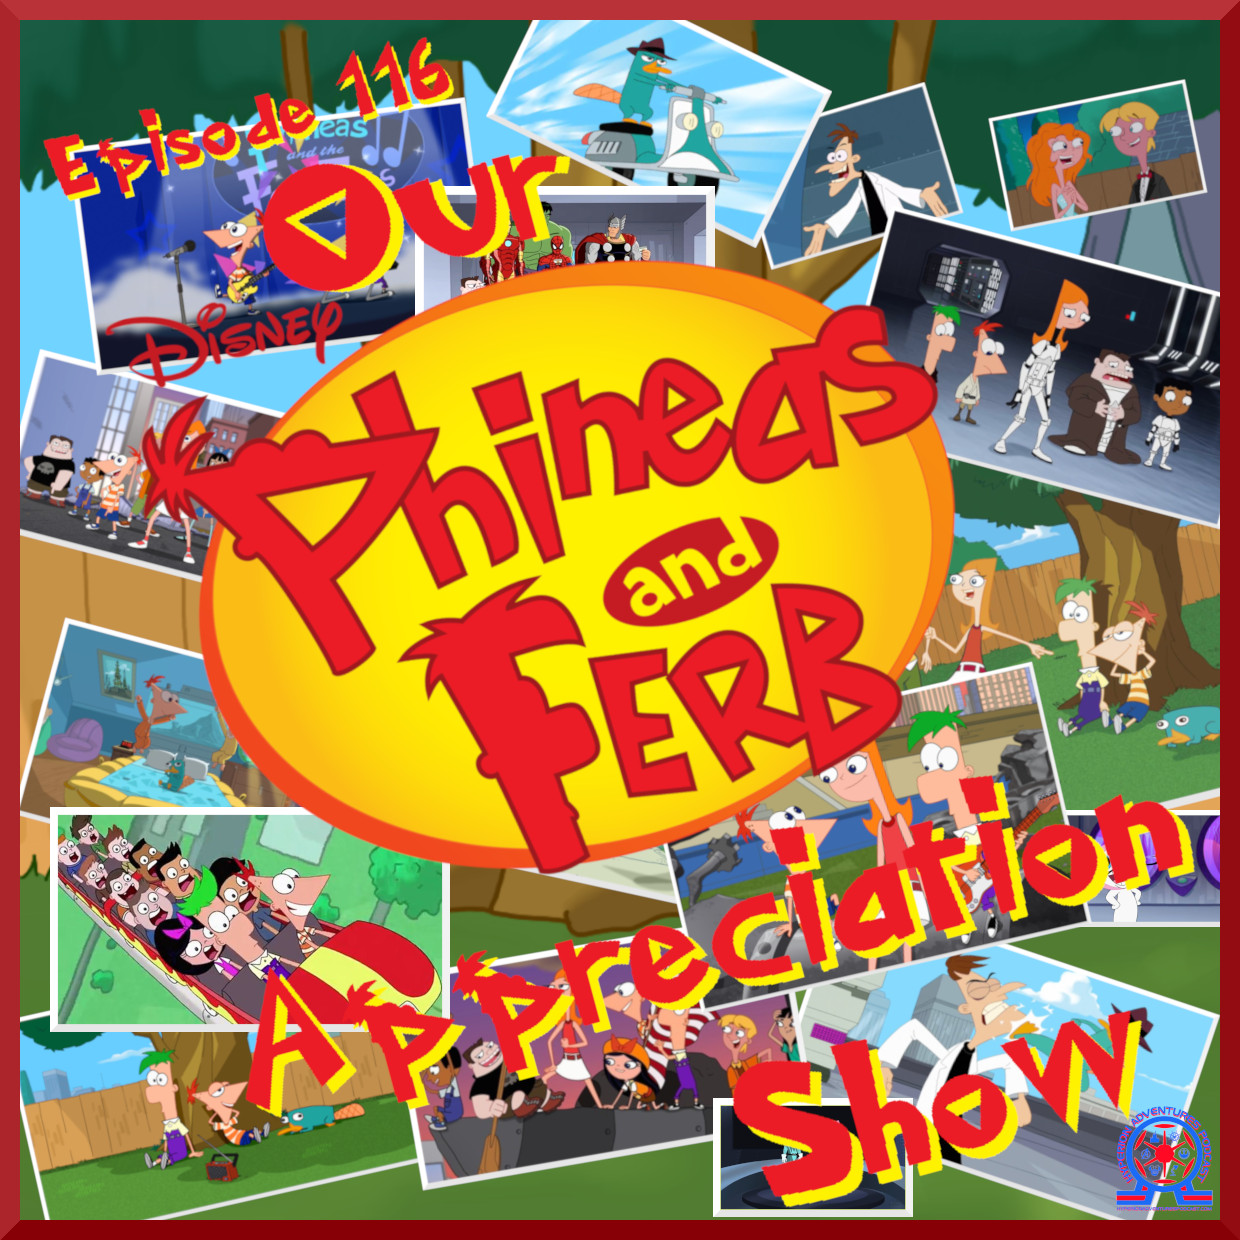 Our Phineas & Ferb Appreciation Show